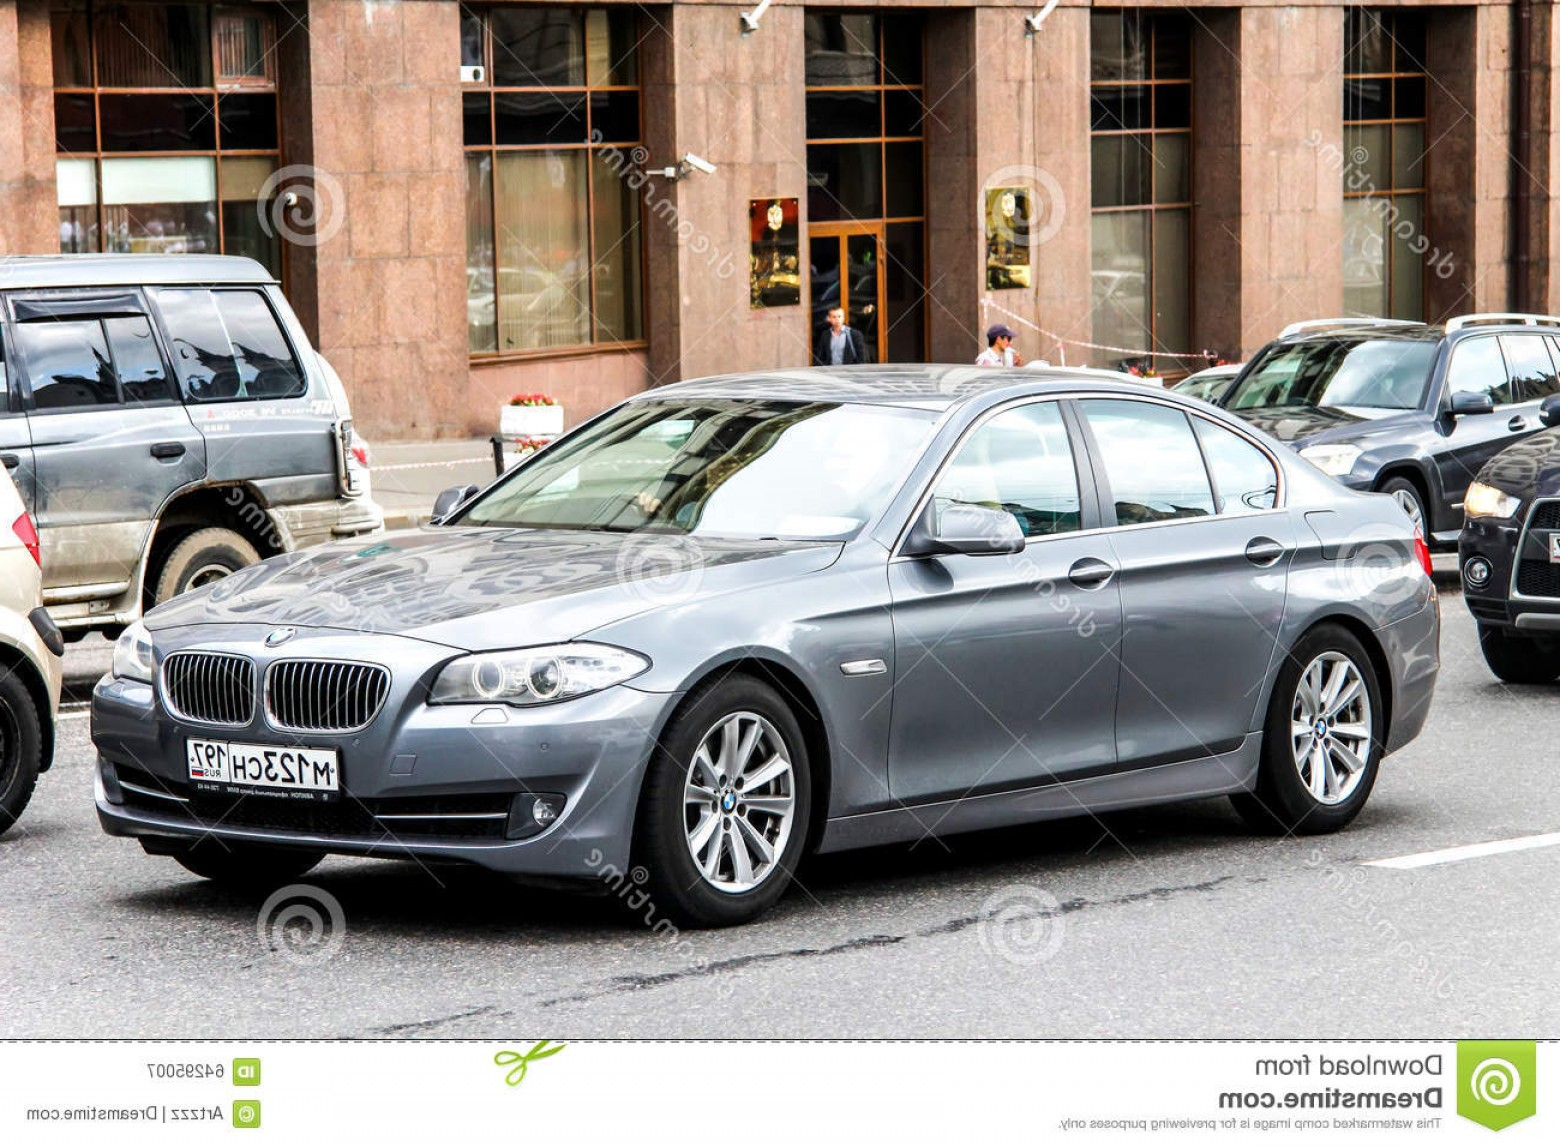 BMW F10 Vector Art: Editorial Photography Bmw F Series Moscow Russia June Motor Car City Street Image